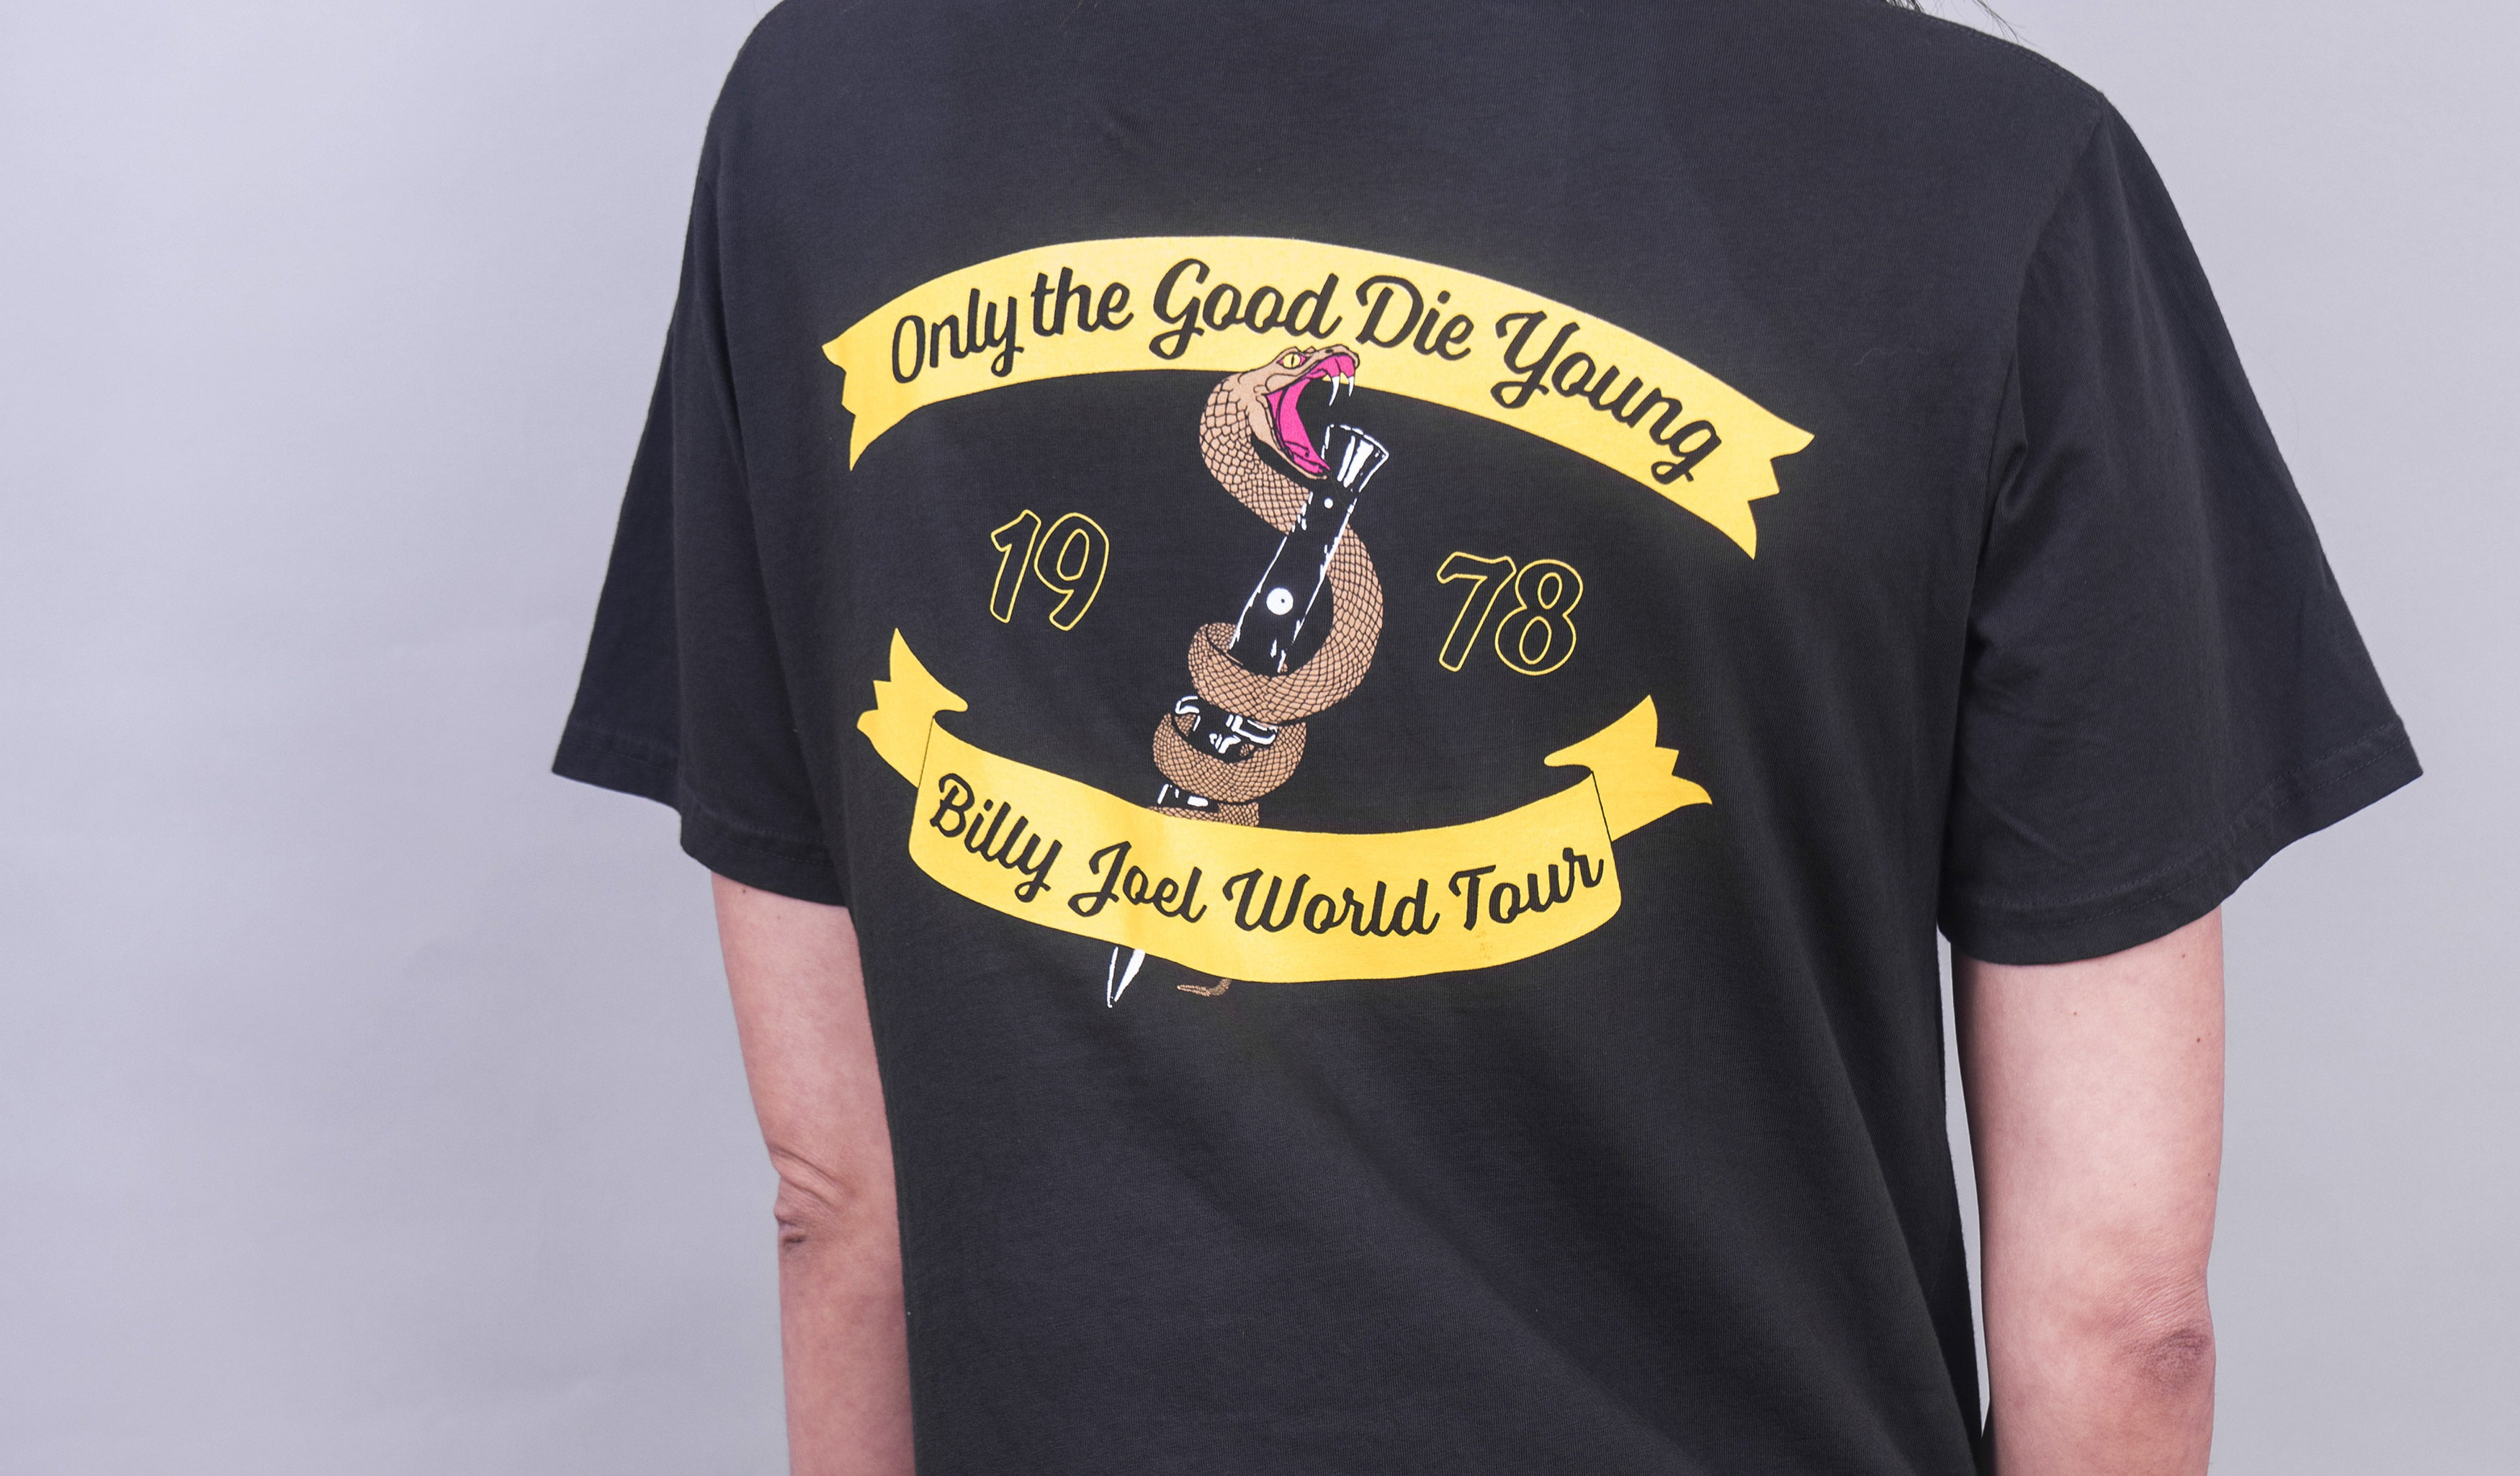 Only The Good Die Young (Vintage Black)